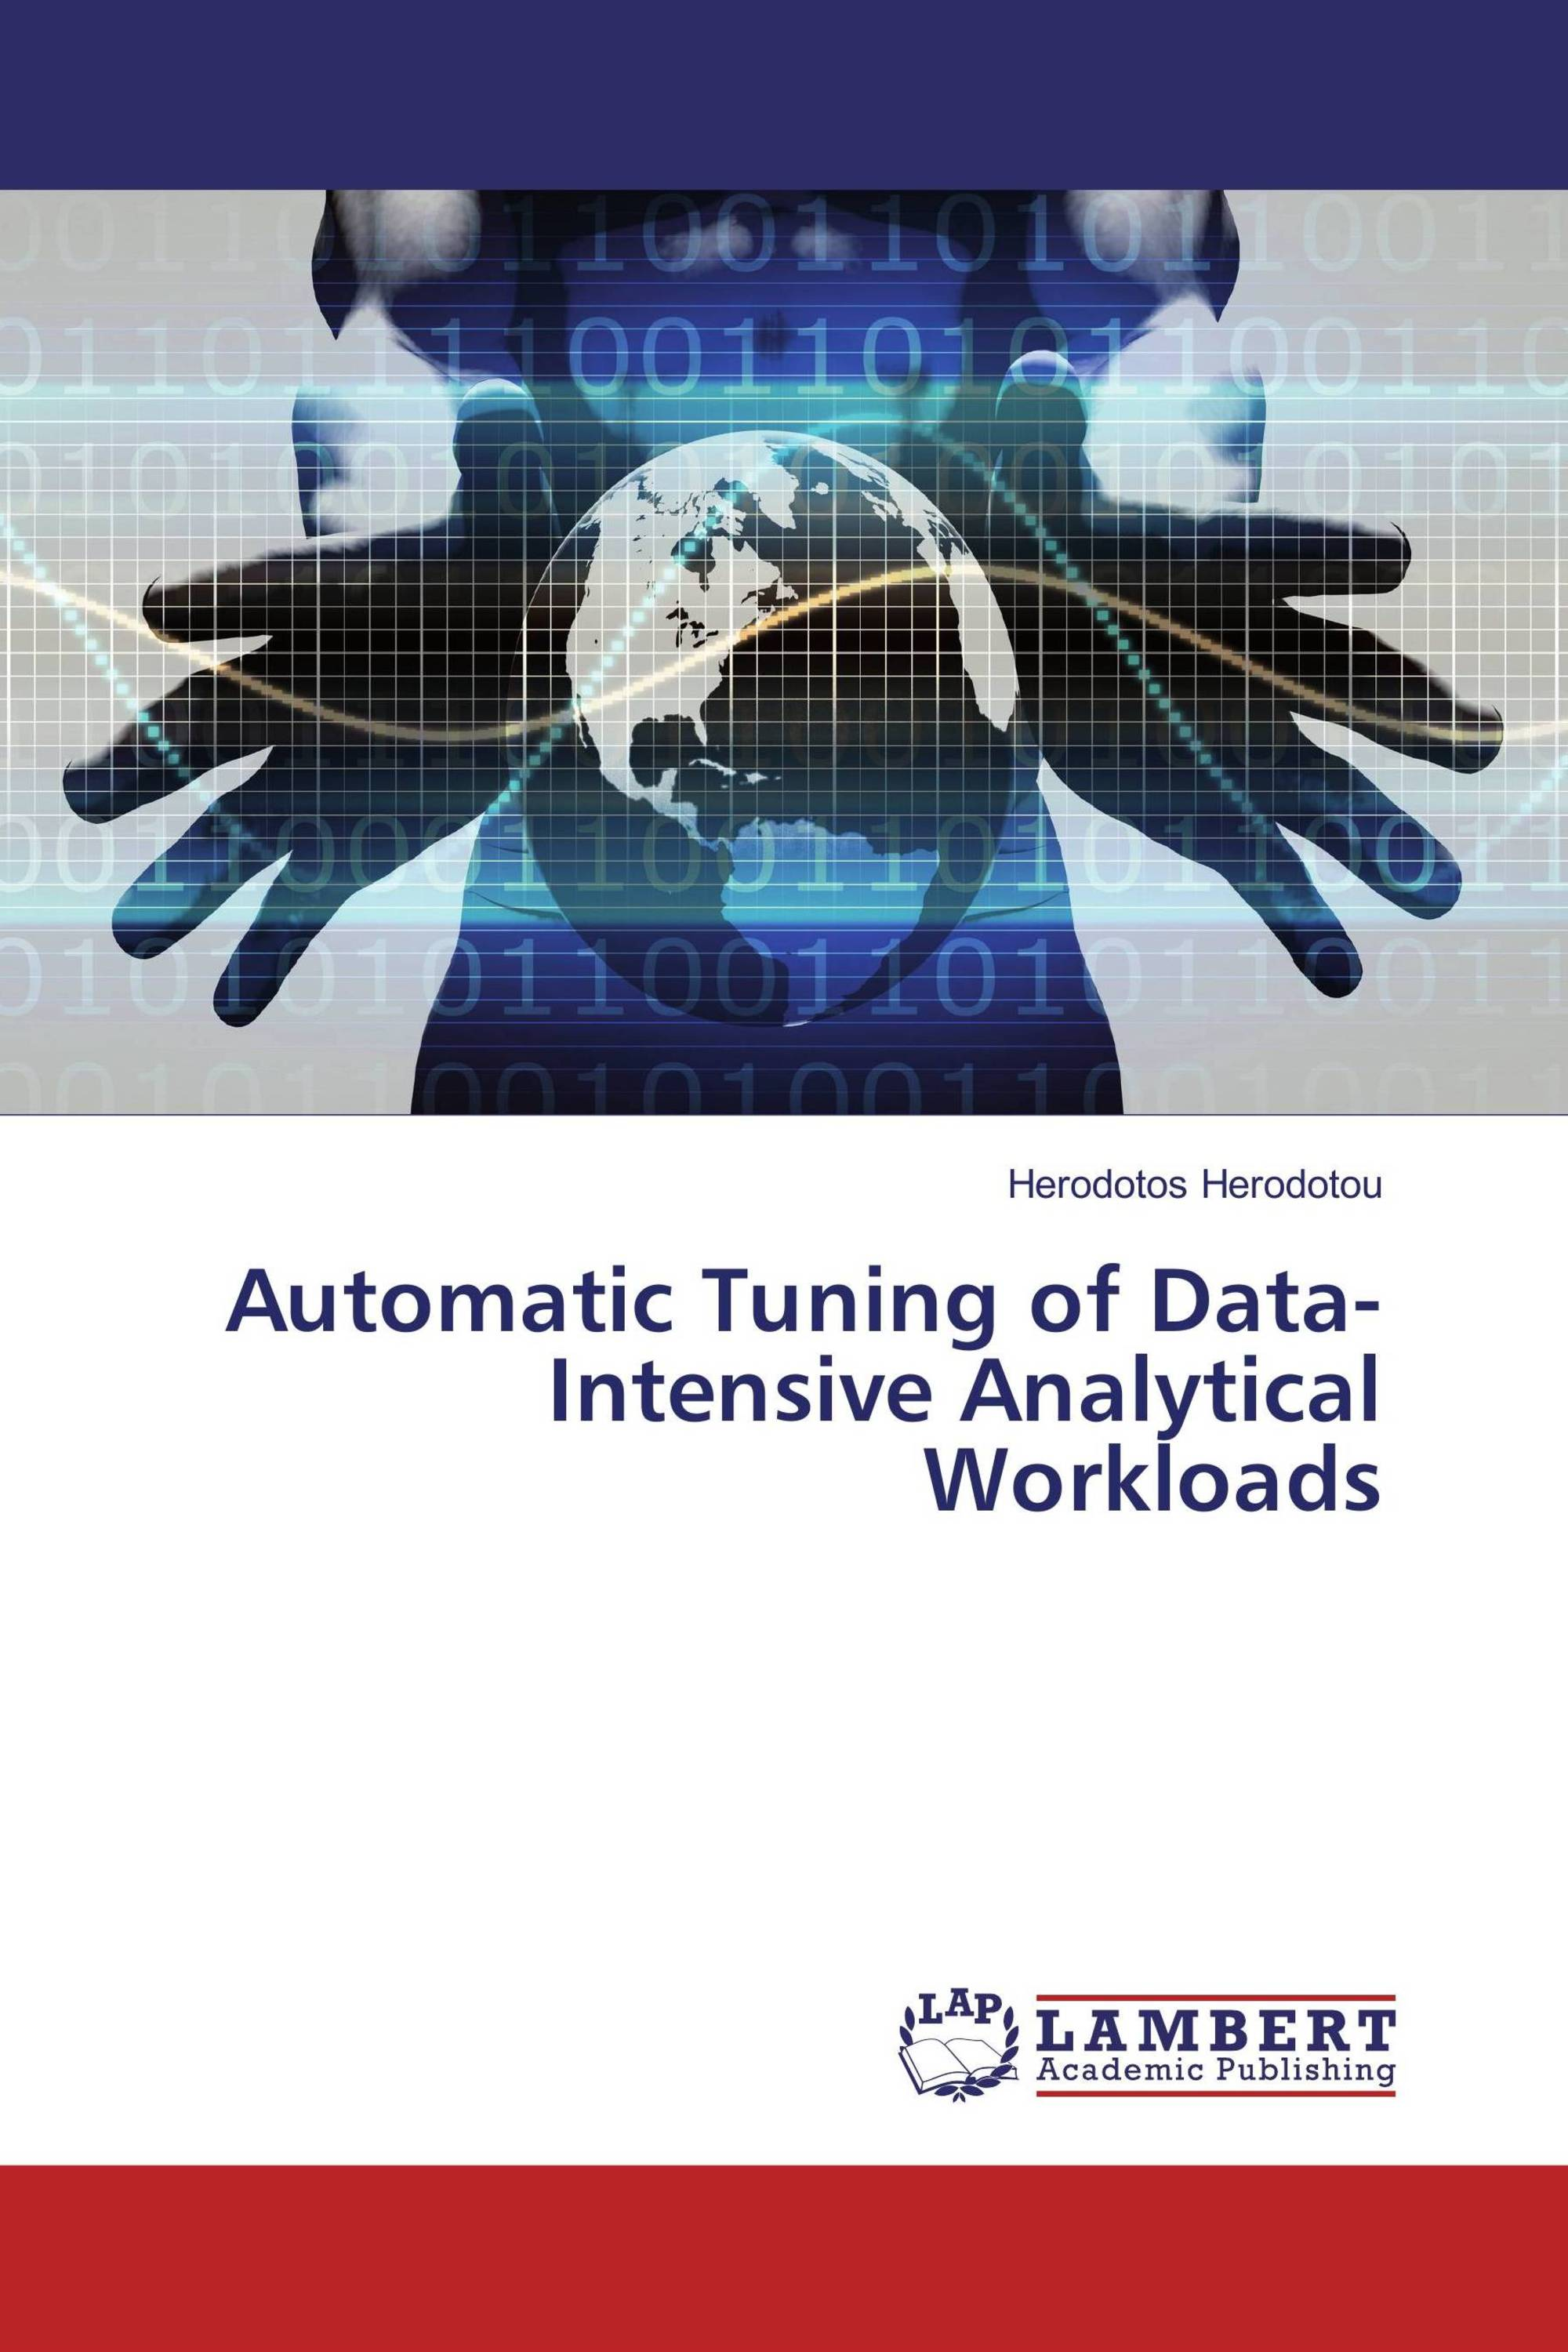 Automatic Tuning of Data-Intensive Analytical Workloads